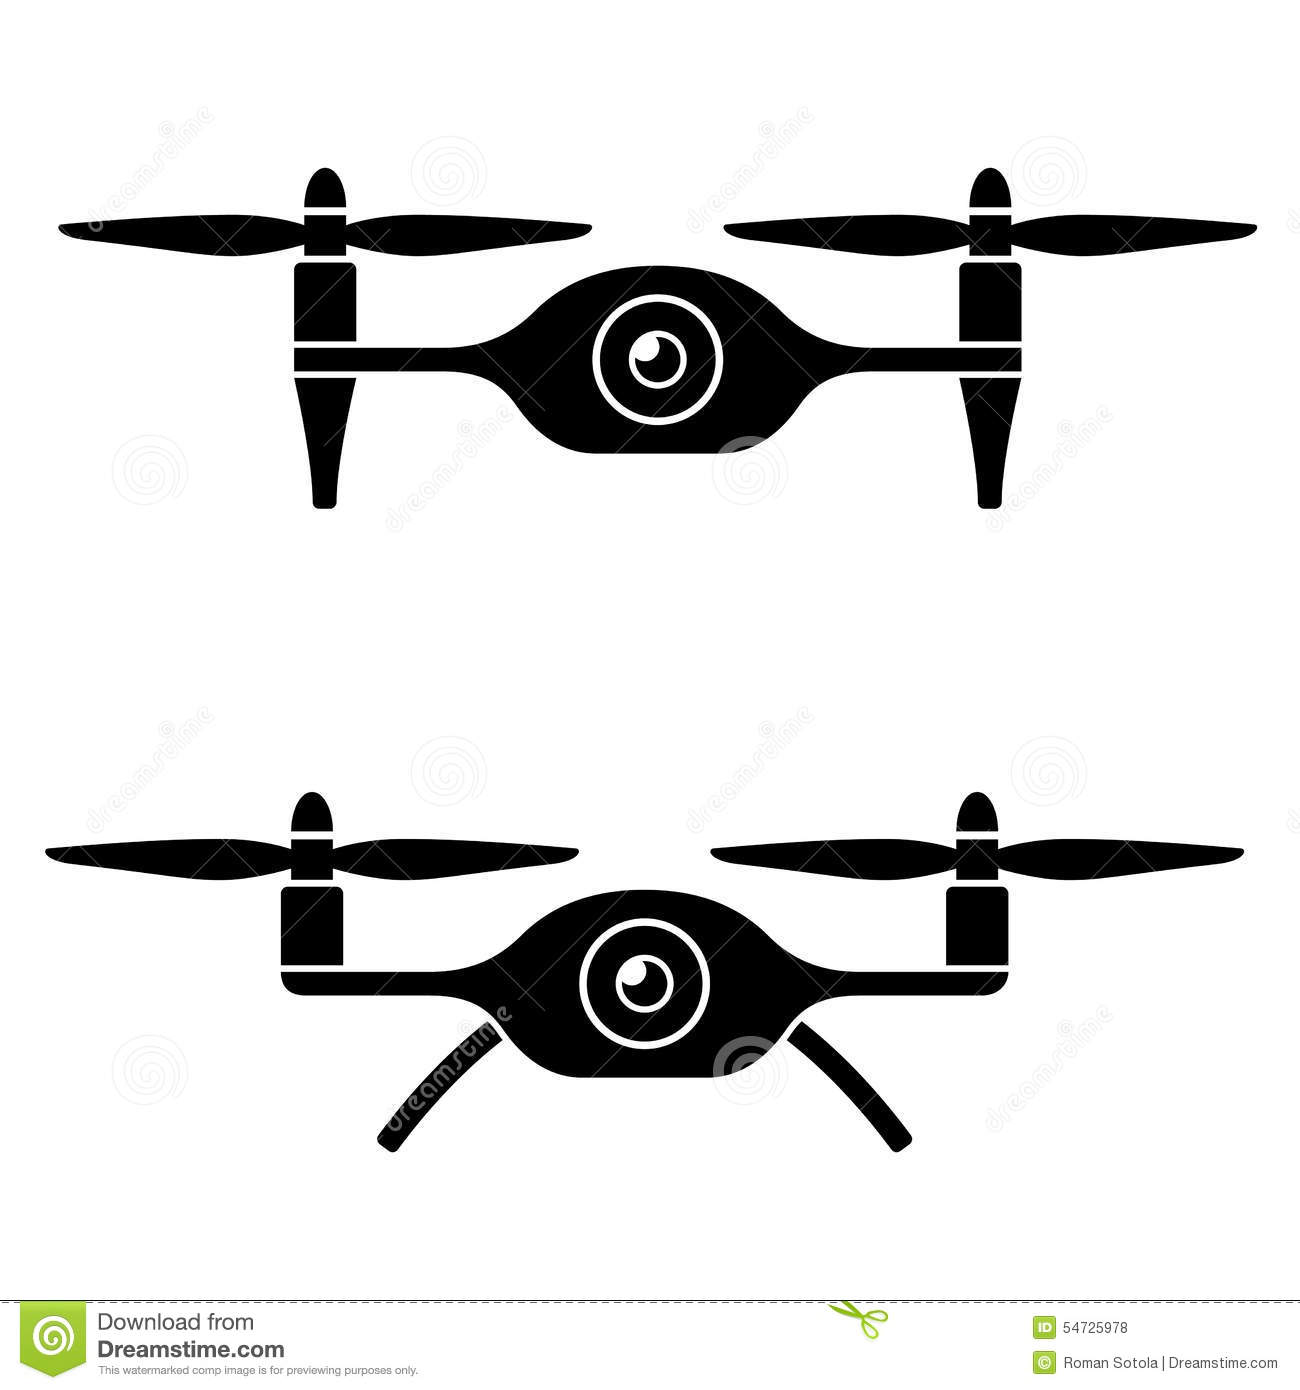 remote control helicopter camera with Stock Illustration Rc Drone Quadcopter Camera Black Symbol Illustration Web Image54725978 on Manfrotto D1 Drone Backpack besides GYROMetalNanoSpyCopterCamera35CHElectricIRRTFRCHelicopter furthermore Royalty Free Stock Photo Camera Aerial Photography Sky Video Photo Productions Image35324155 further Un Drone Paralyse Le Trafic Aerien Dubai moreover Hd25 Mini Bullet Camera.